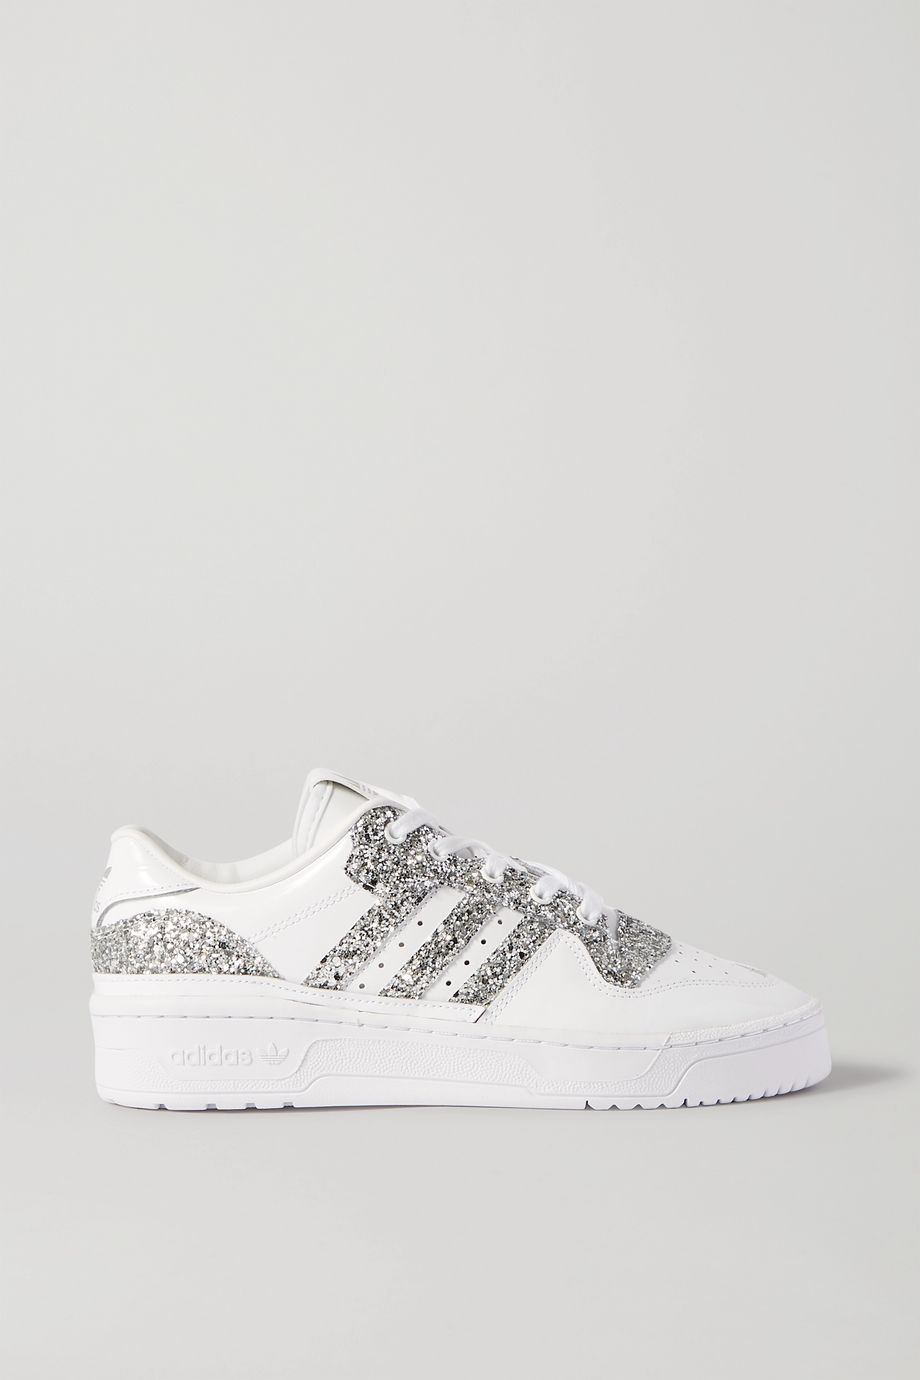 adidas Originals Rivalry Low glittered leather sneakers